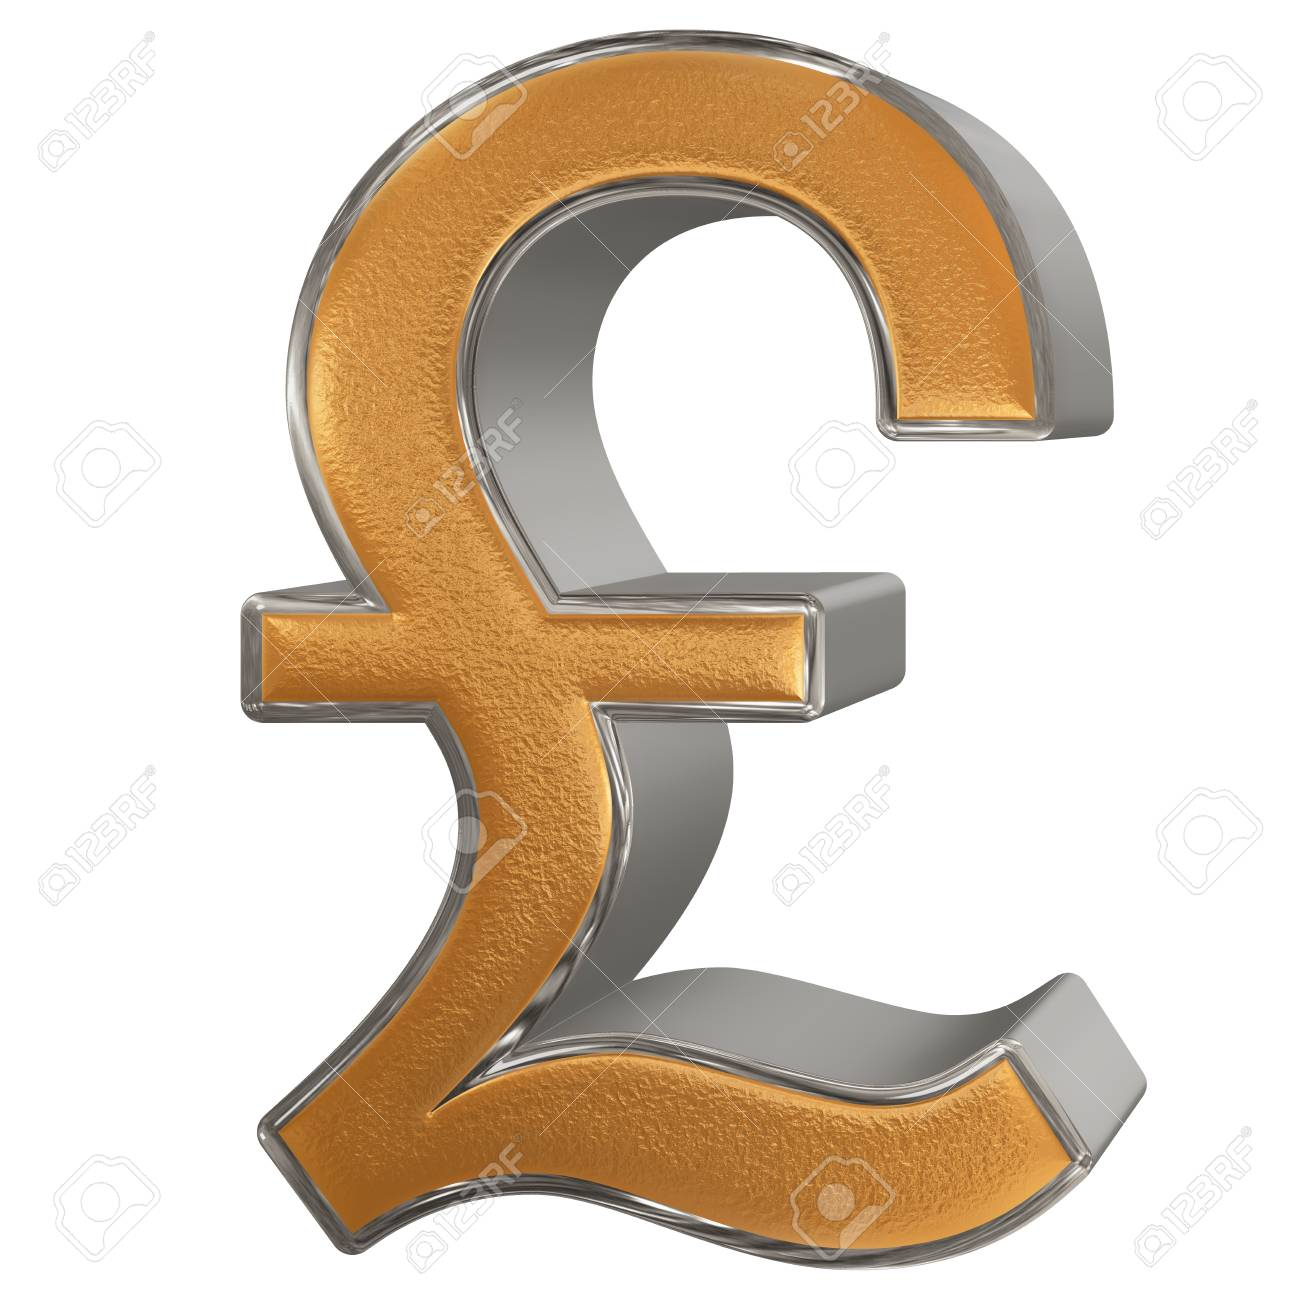 Symbol of british pound sterling isolated on white background symbol of british pound sterling isolated on white background 3d illustration stock illustration biocorpaavc Gallery